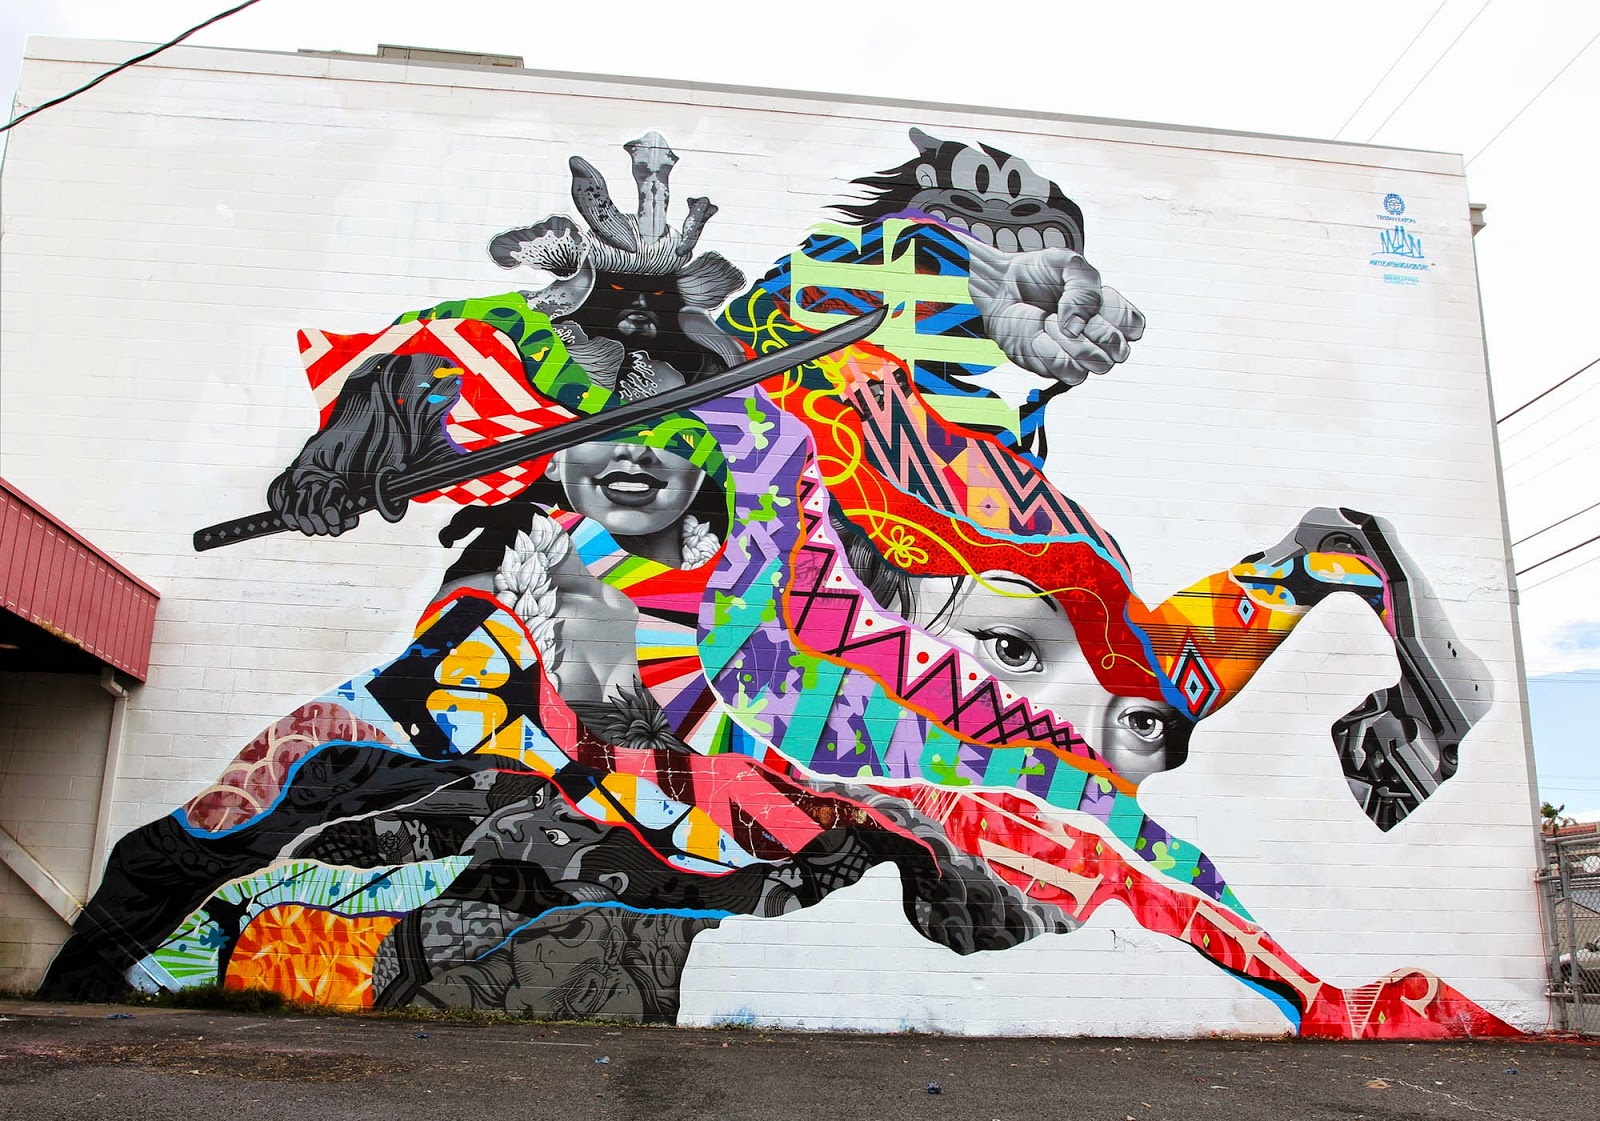 After a huge mural last year on the same building, Tristan Eaton is back in lovely Hawaii to work on a brand new mural for Pow! Wow! Hawaii 2015.